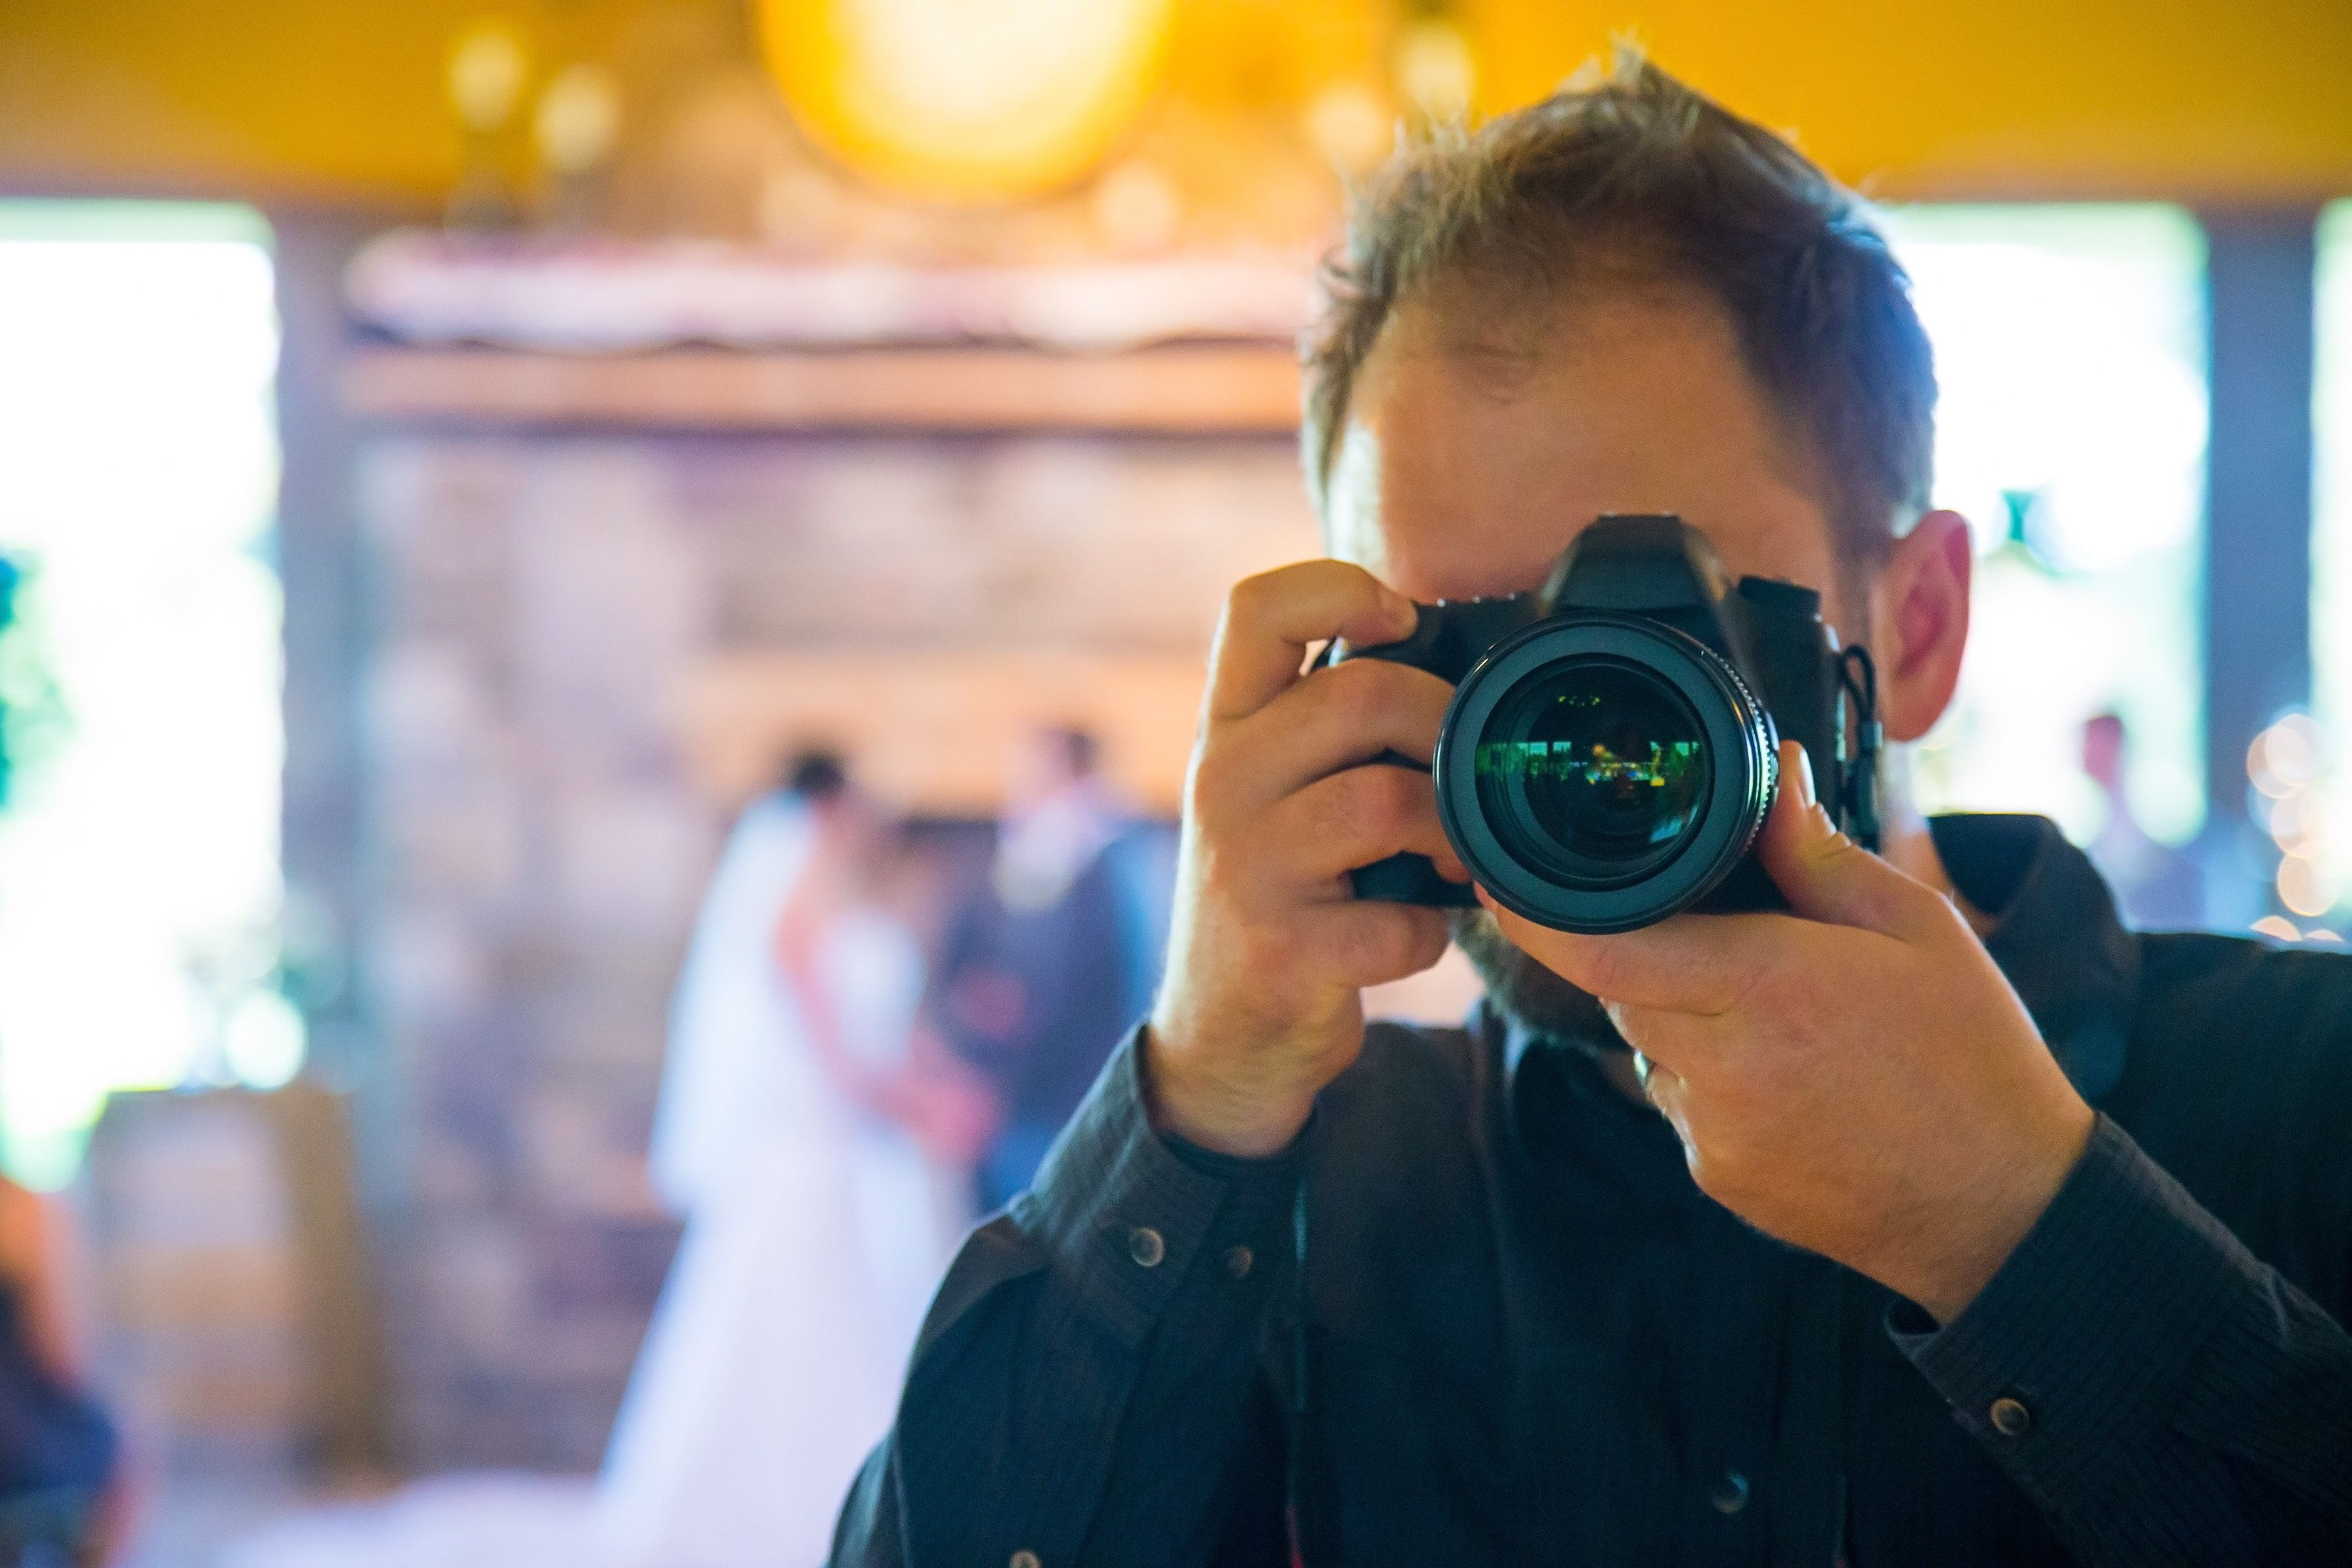 Revealed: The One Shot That Wedding Photographers Will Never Share With